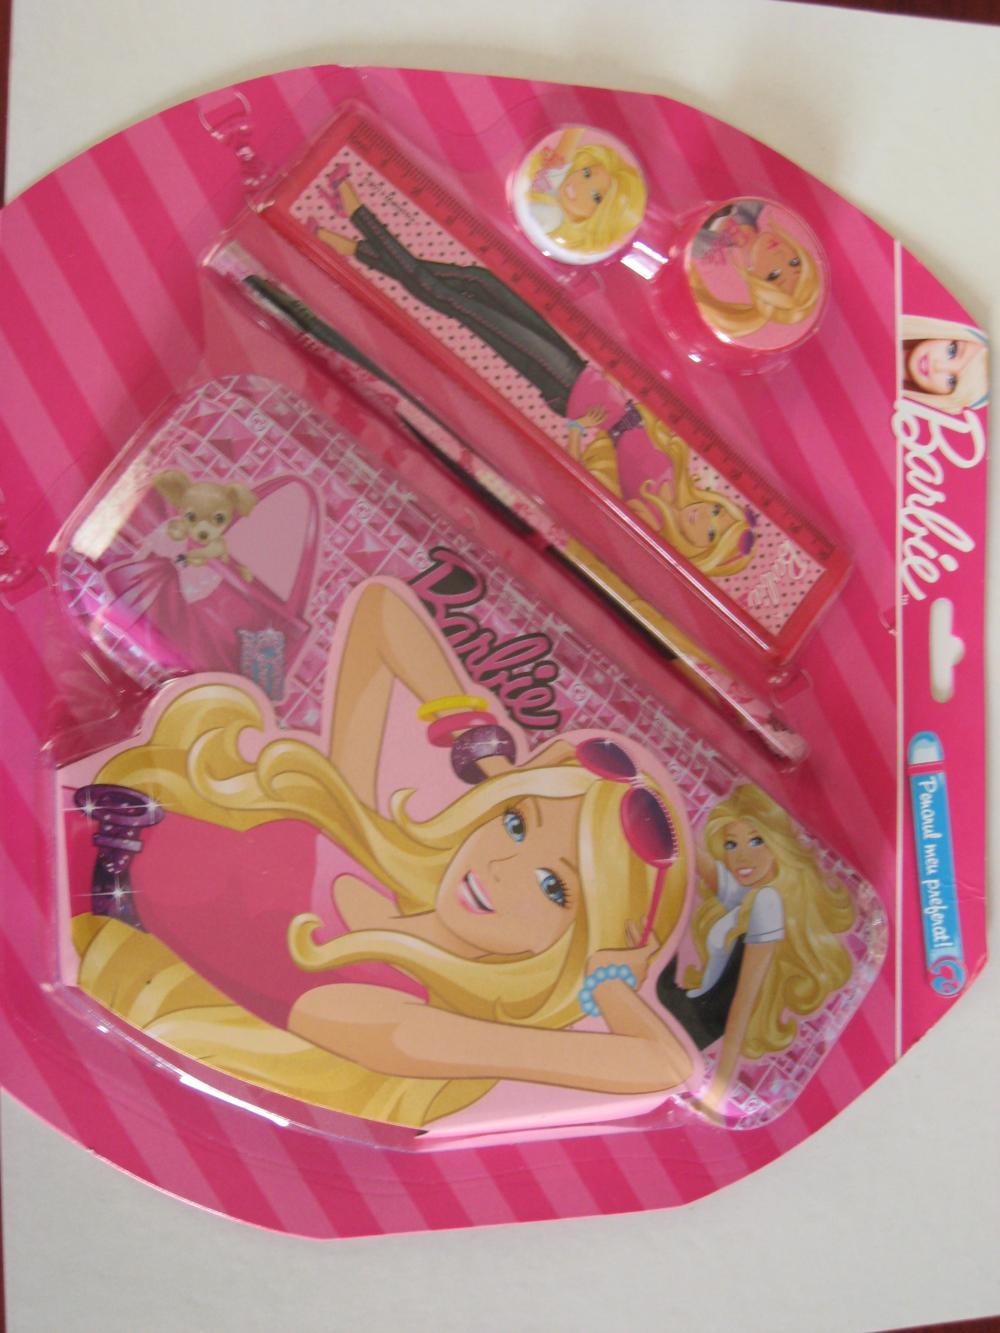 Penar metalic echipat, Barbie